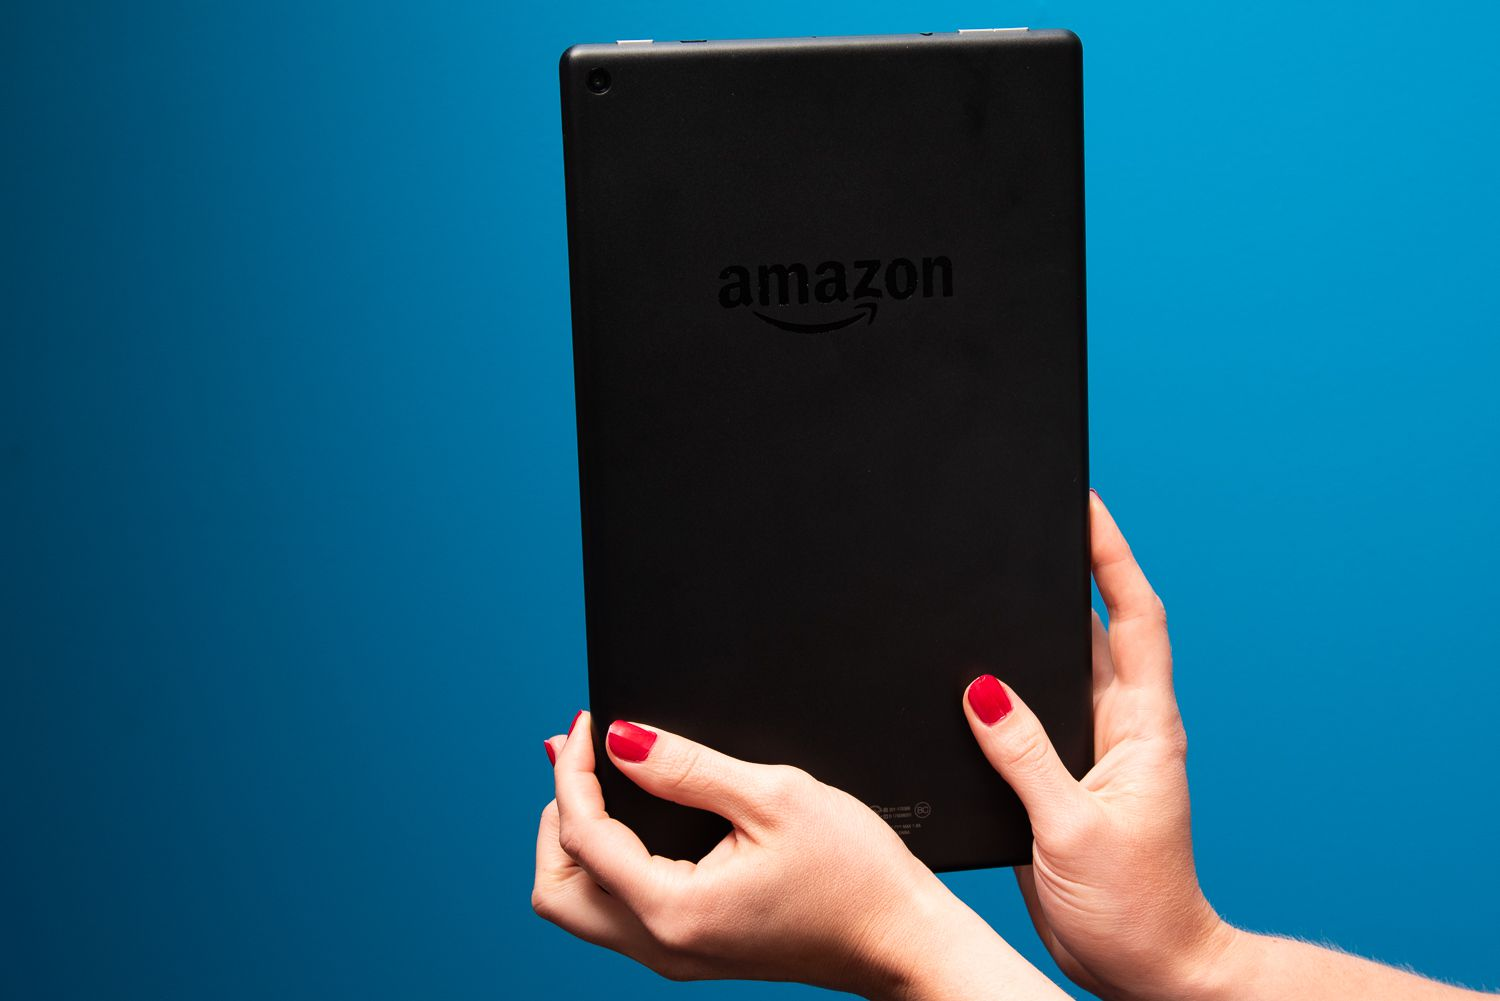 Amazon Fire Hd 10 Review A Multimedia Tablet Made For The Whole